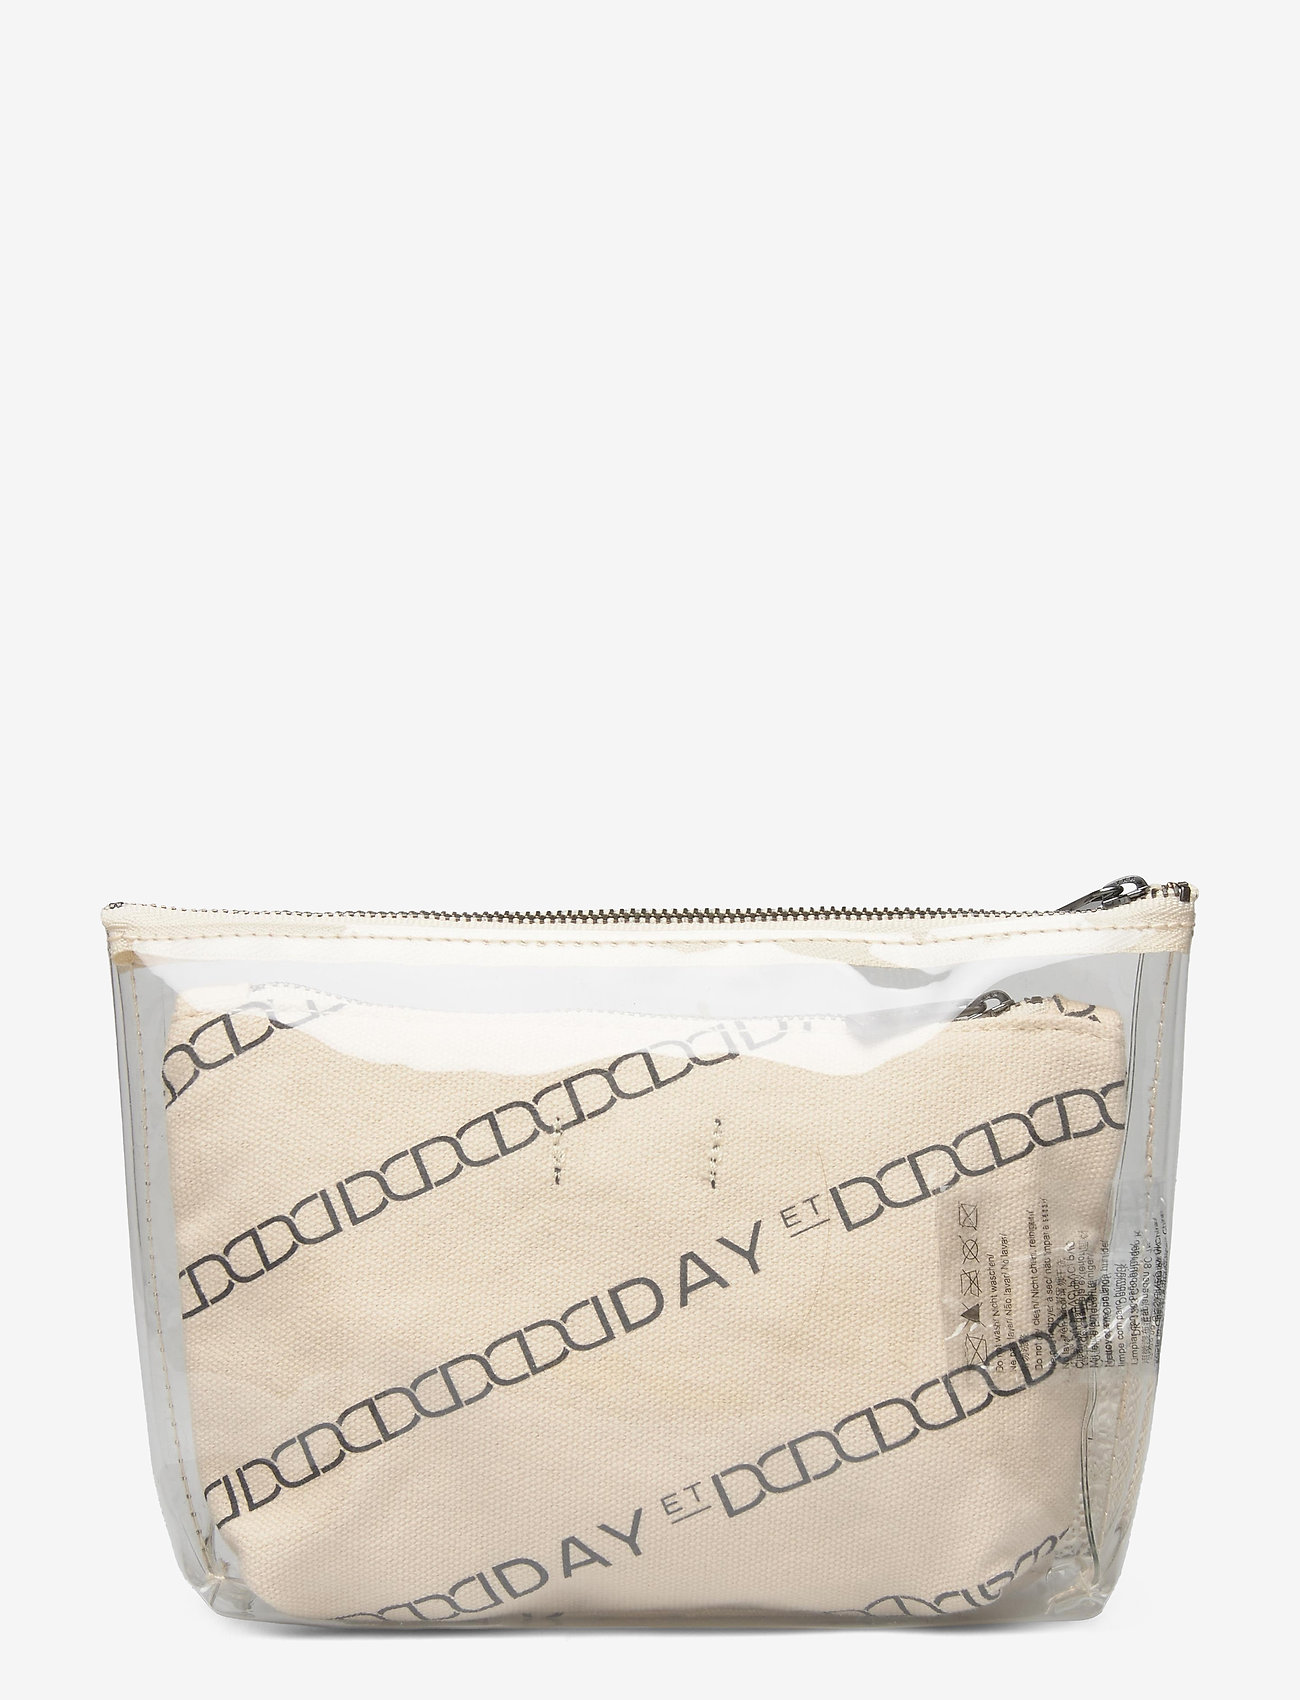 Day Et Canvas Transparent Pouch - Cosmetic Bags